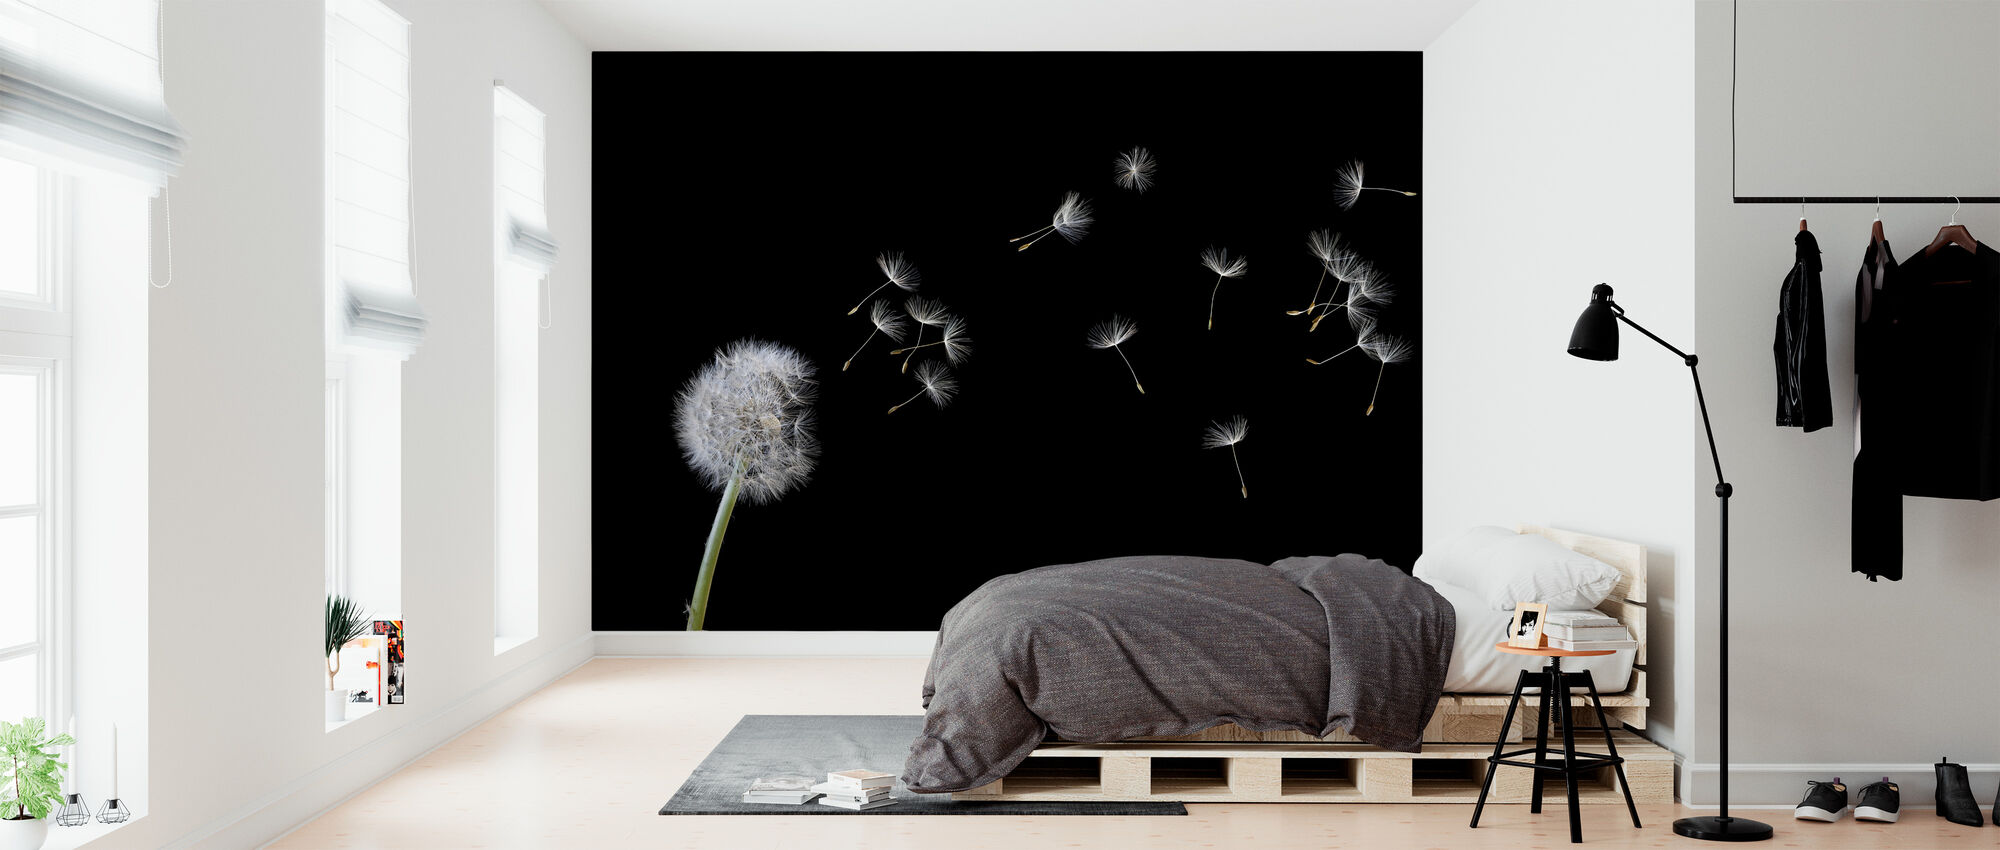 Blown Dandelion - Wallpaper - Bedroom